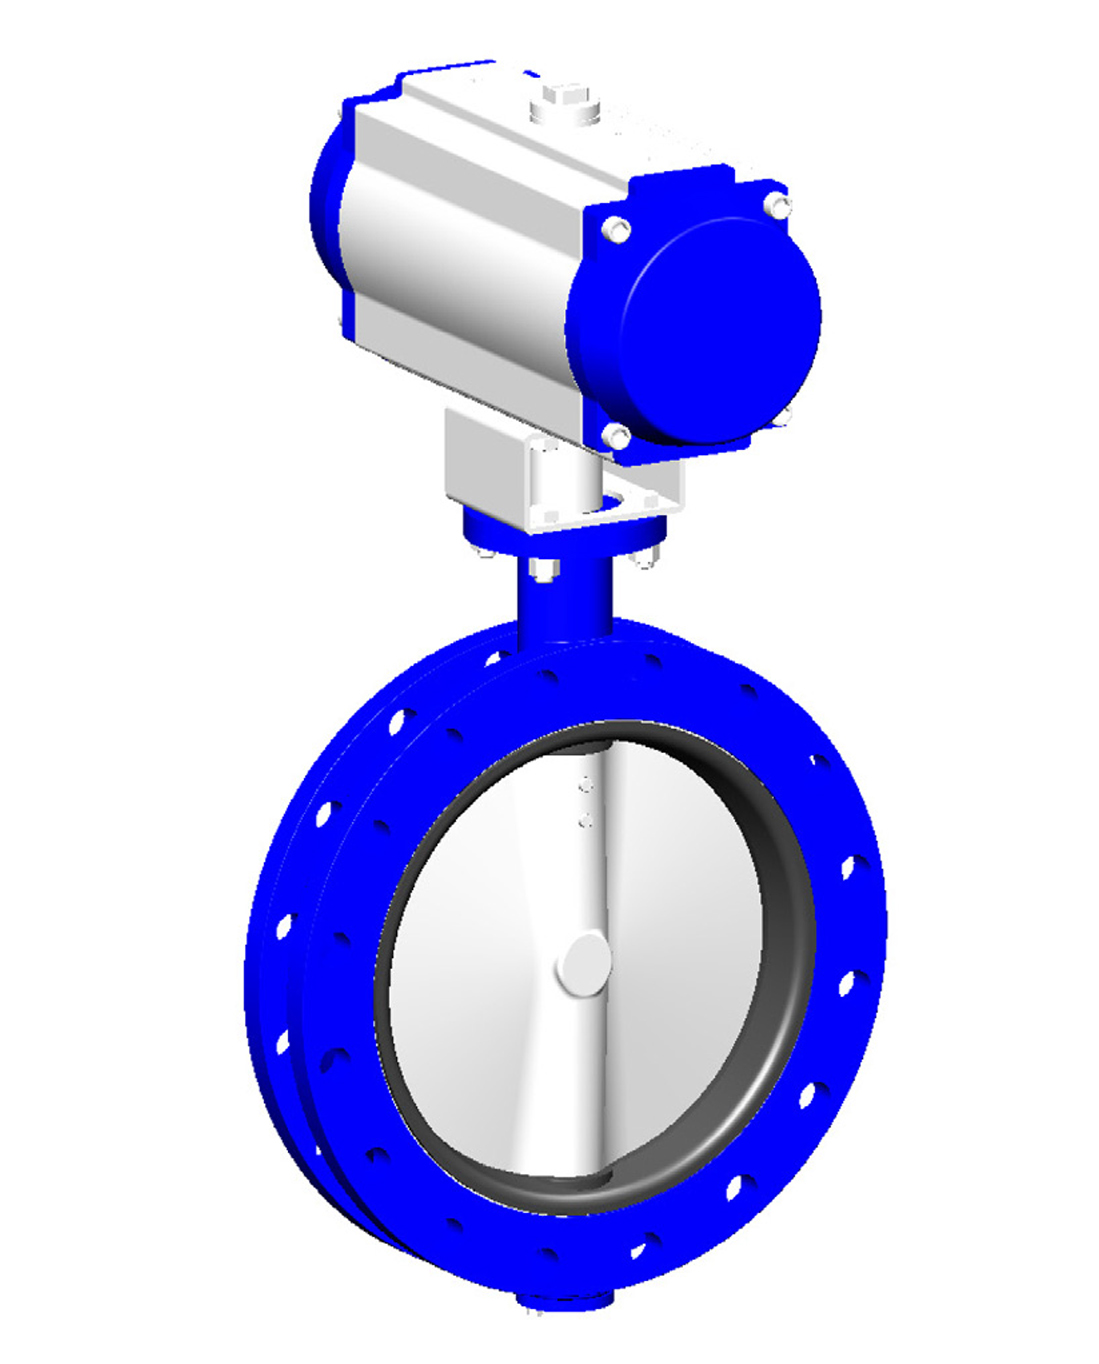 Double flanges type butterfly valve PN16 – ductile iron body – ductile iron disc – single acting pneumatic operator